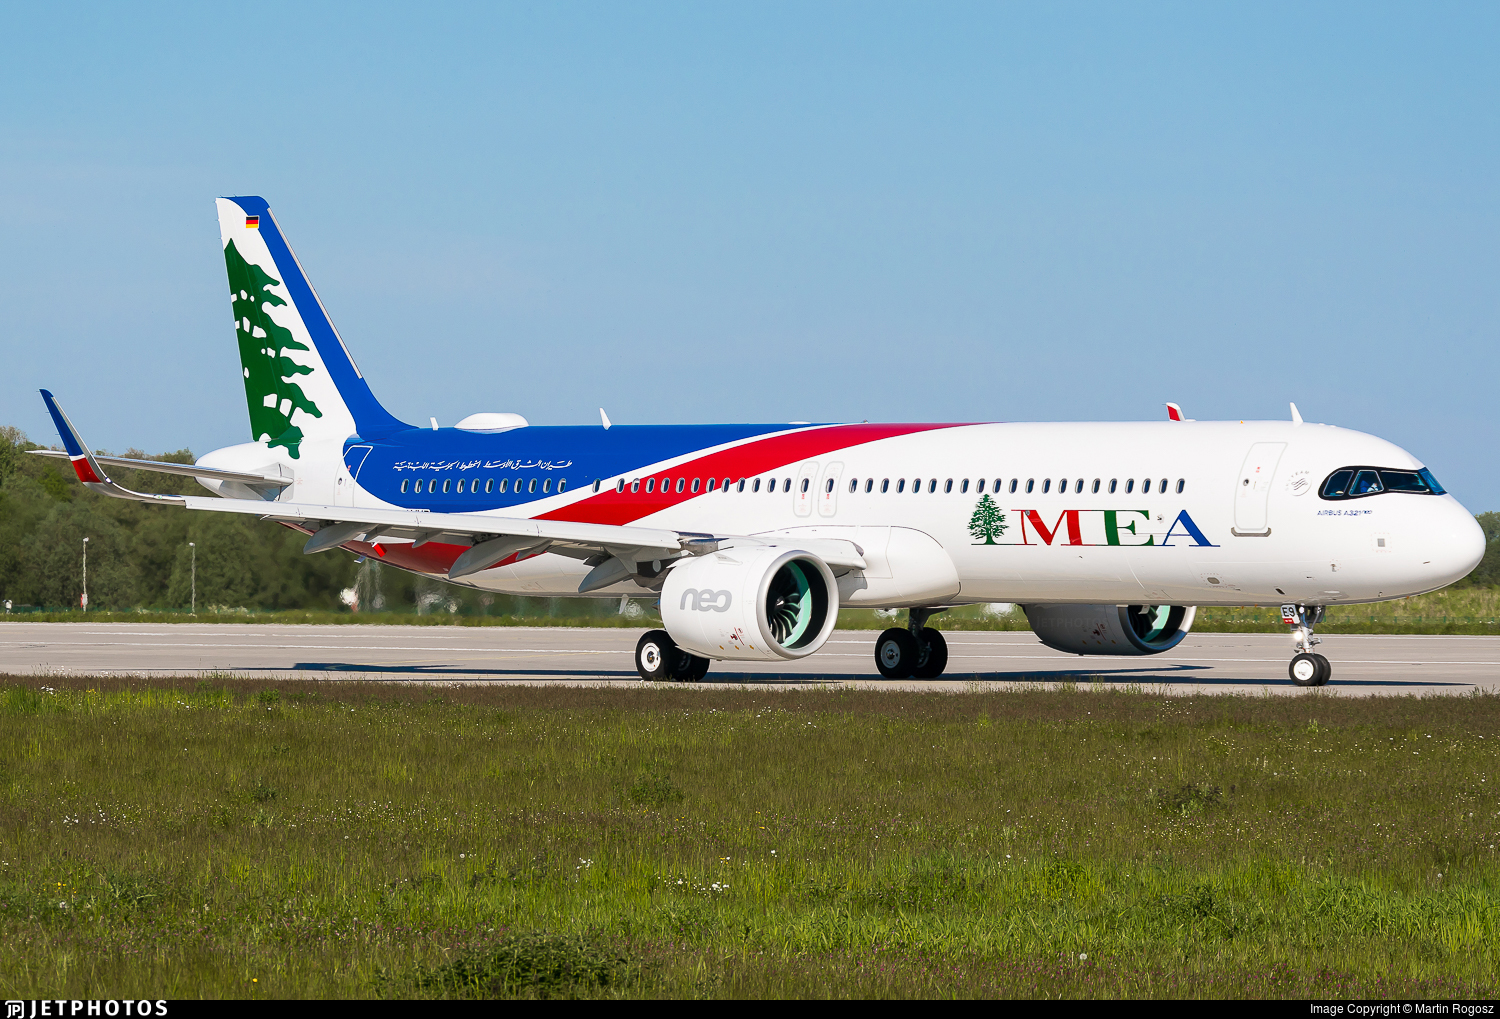 D-AVXP - Airbus A321-271NX - Middle East Airlines (MEA)